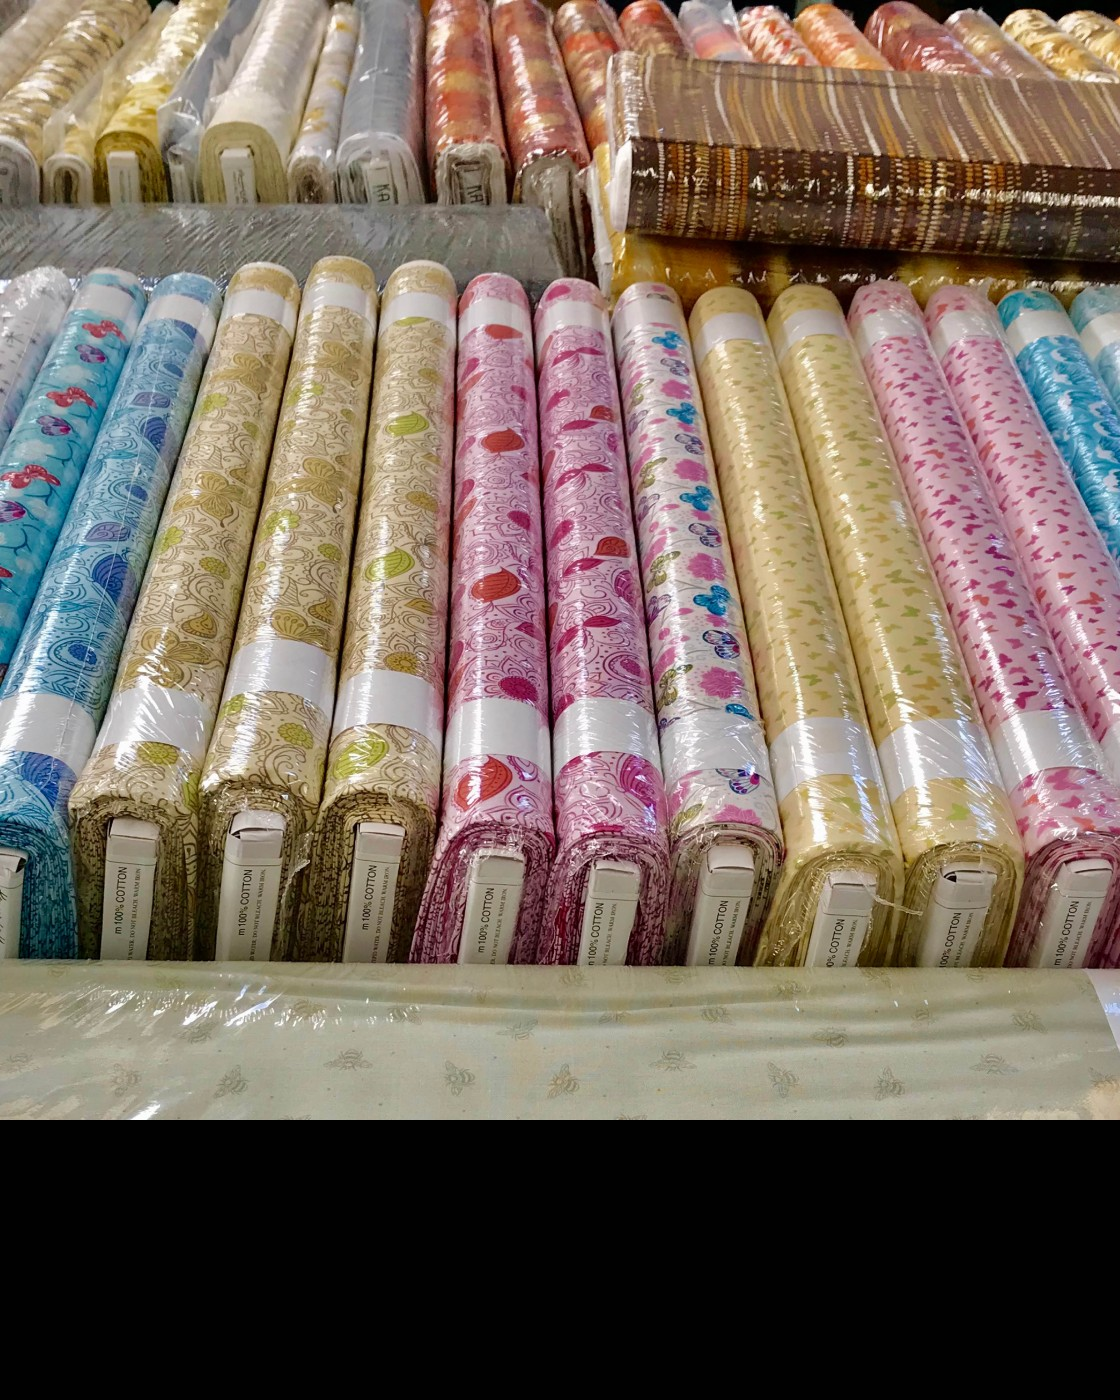 Wholesale Fabrics Brisbane Wholesale Patchwork Quilting Fabric Designers And Suppliers In